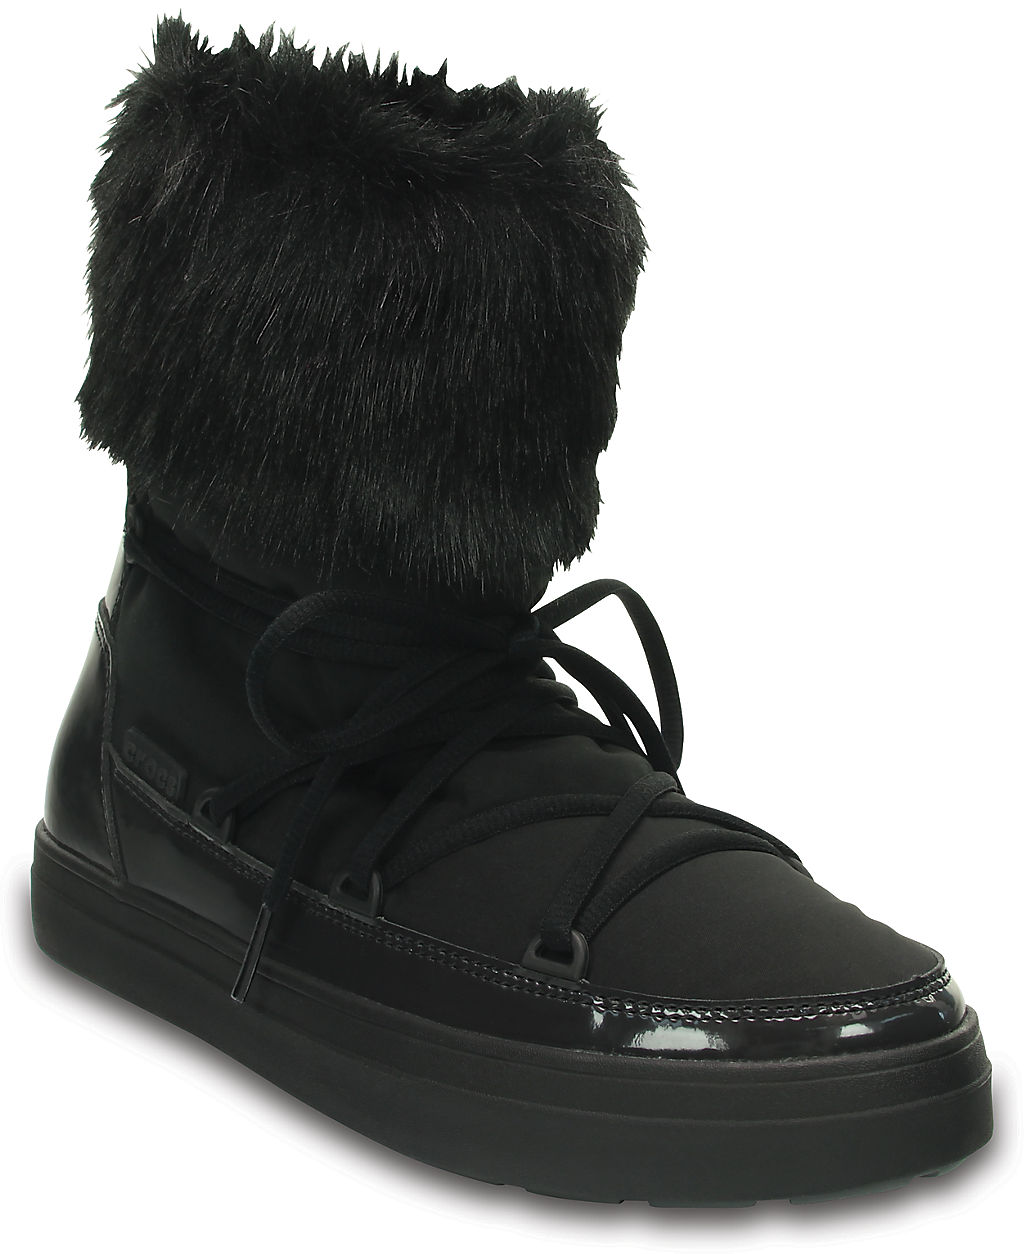 Women's LodgePoint Lace Boot